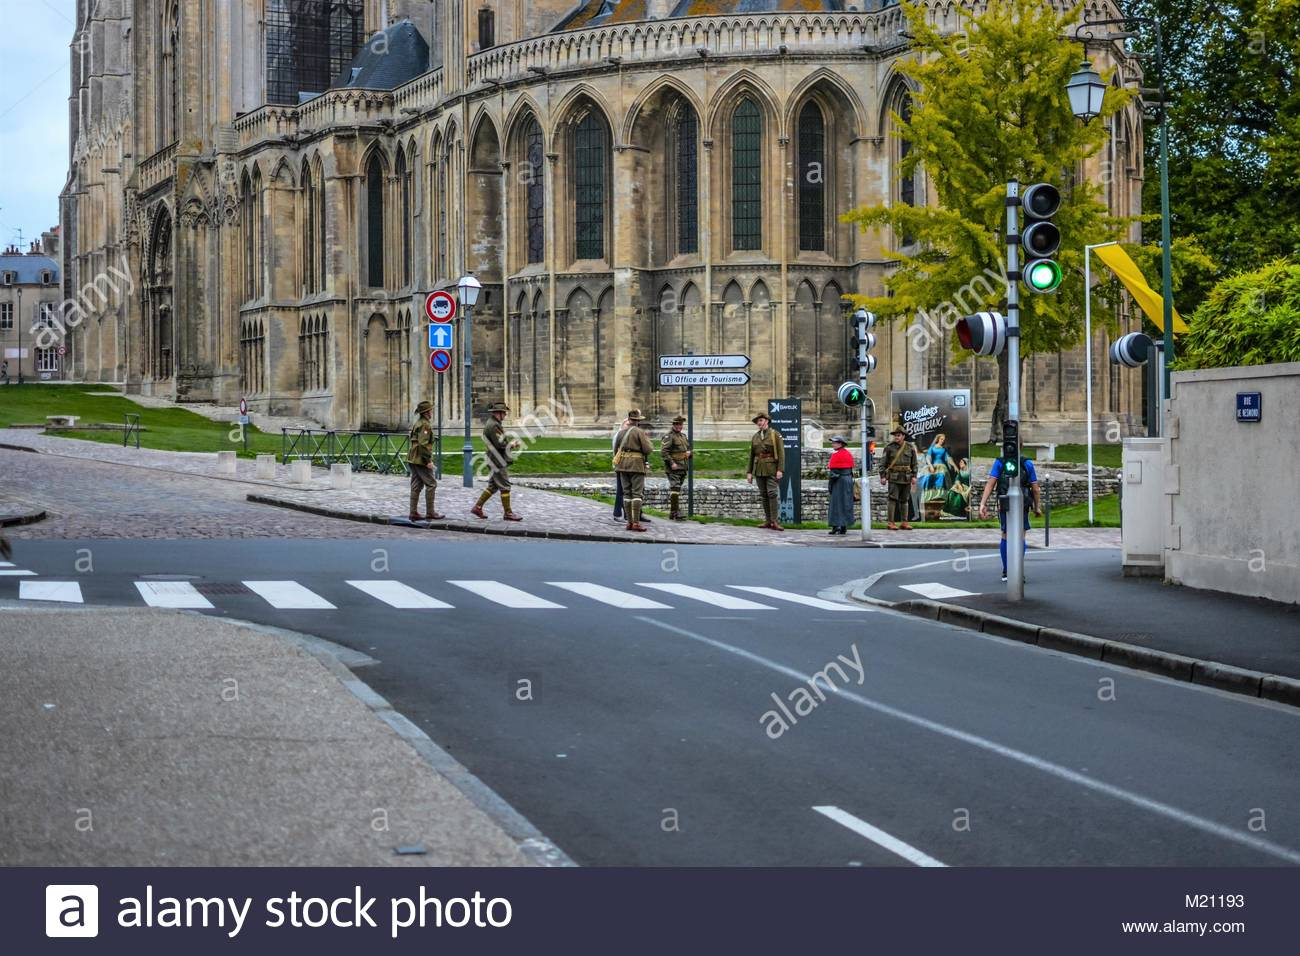 Men dressed in vintage World War soldiers' uniforms walk outside the Bayeux Cathedral in the historic Normandy town - Stock Photo